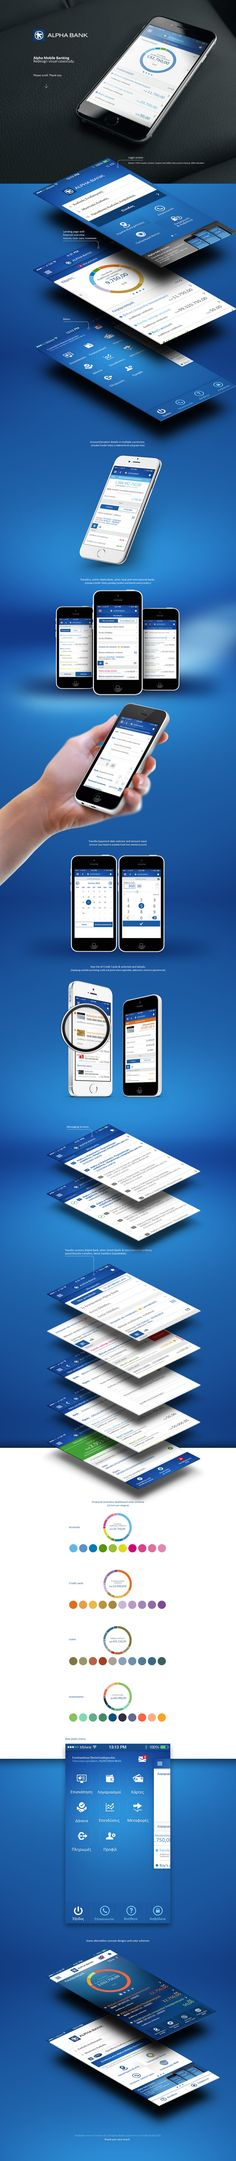 Alpha Mobile Banking - Redesign visual case study. on Behance